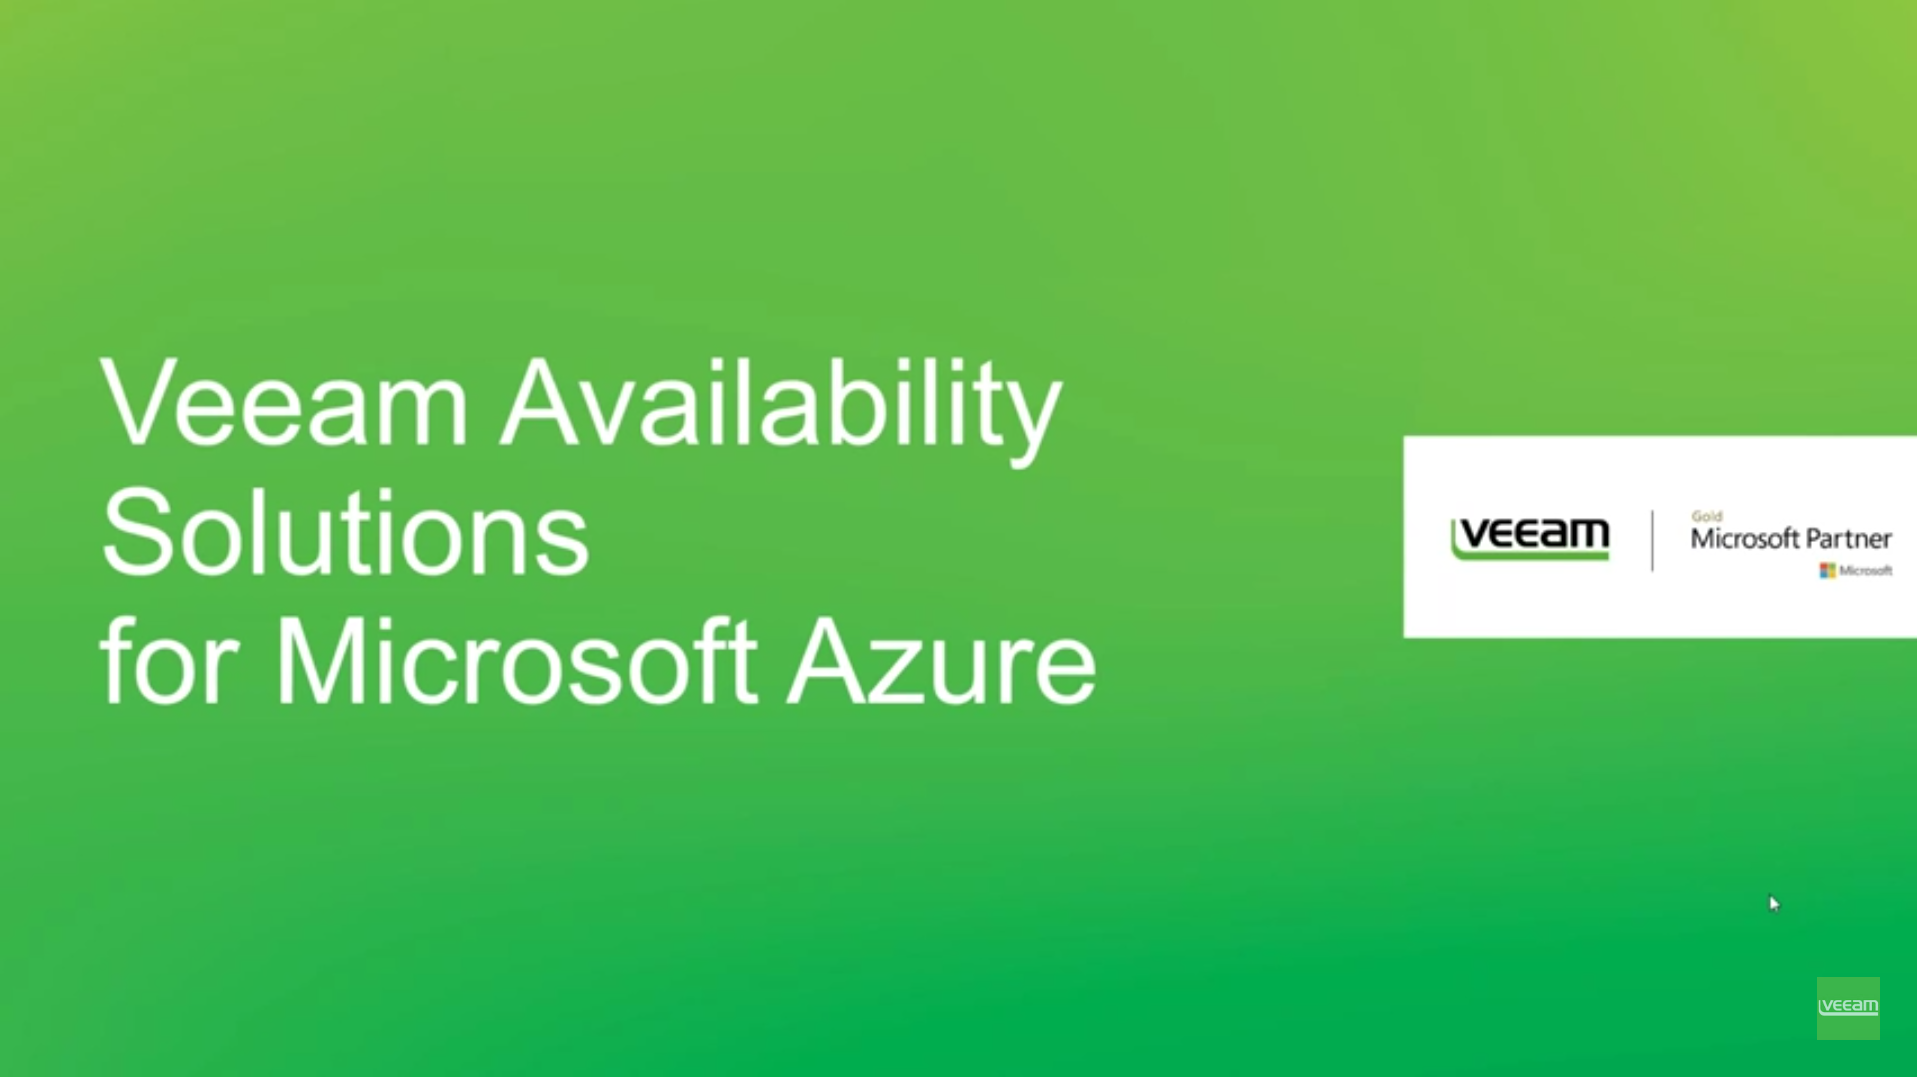 Hybrid Cloud Solutions from Veeam and Microsoft Azure